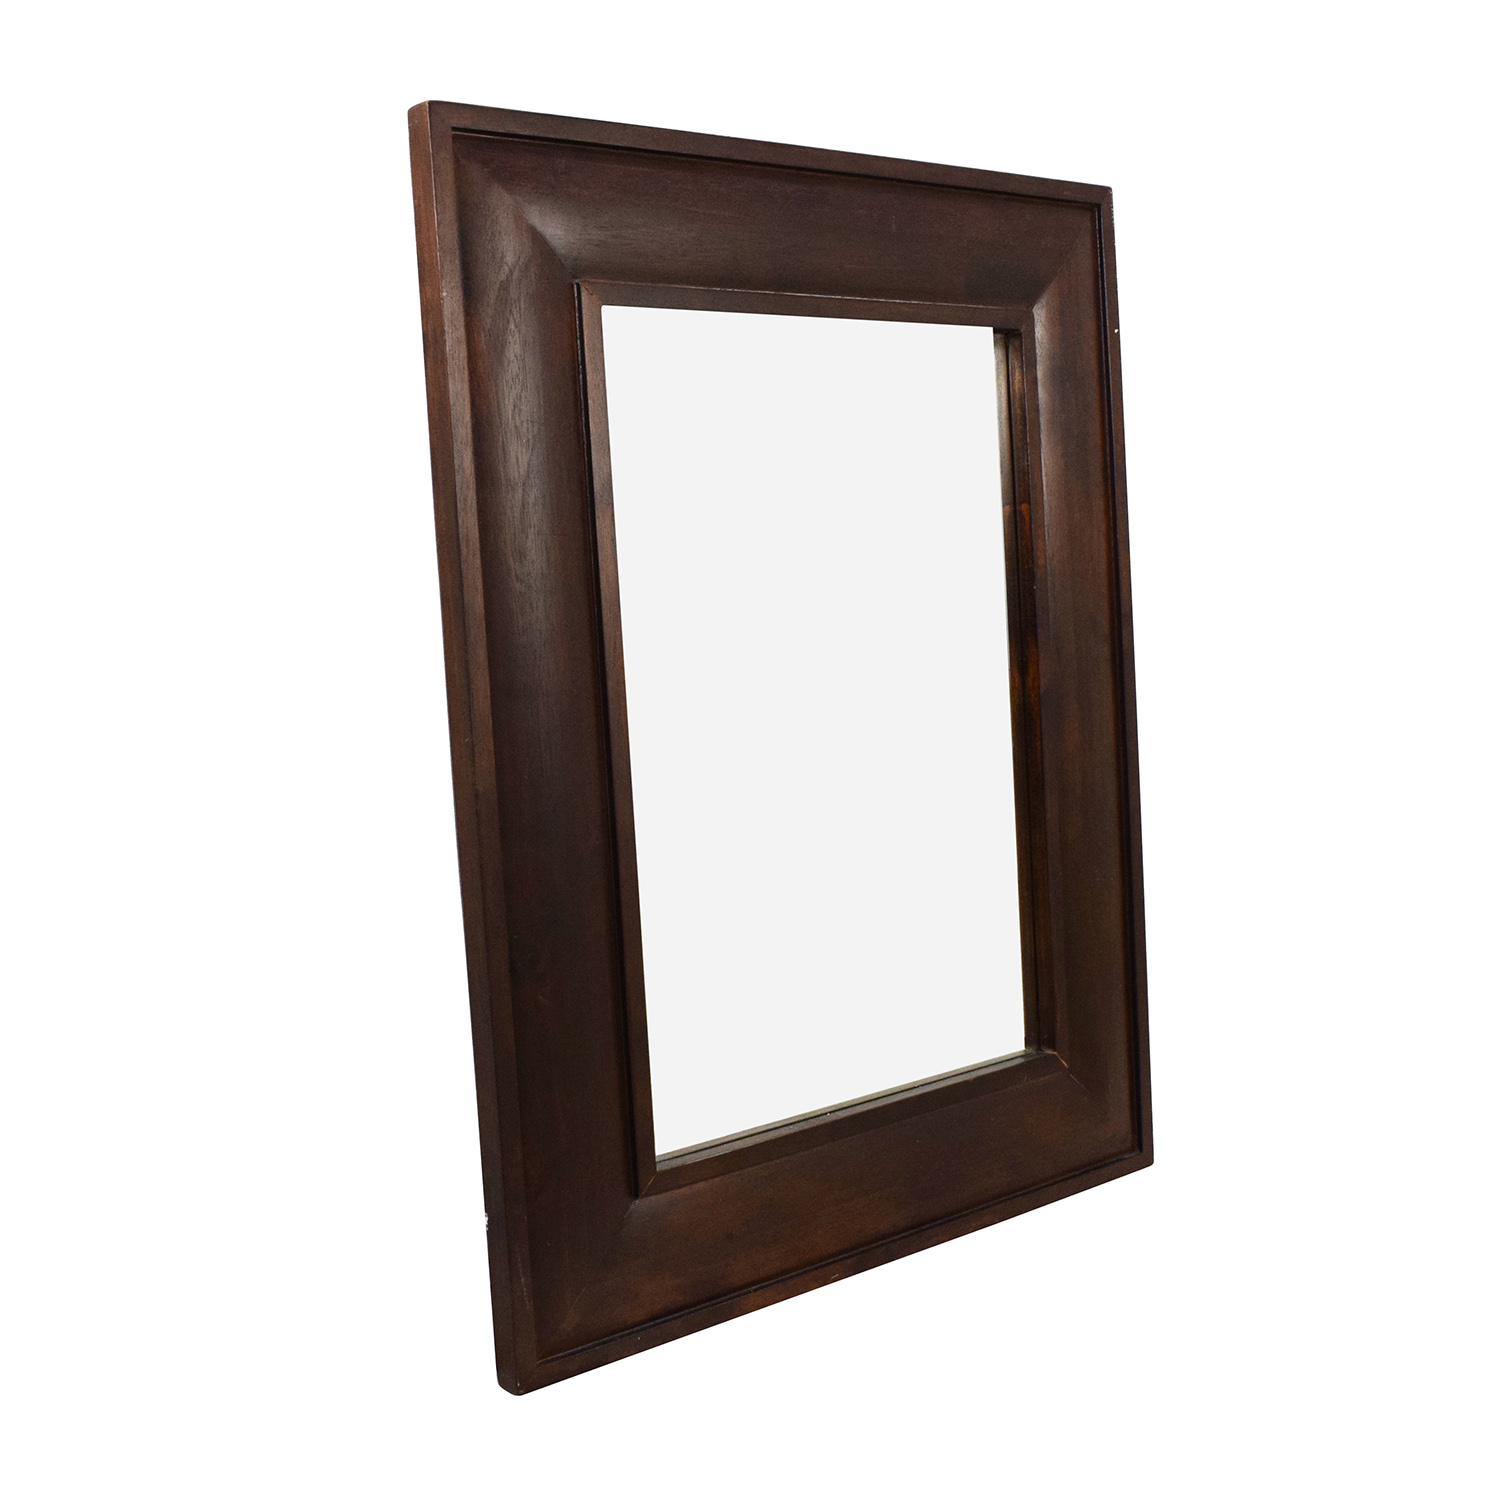 shop Square Wood Framed Hanging Mirror Decor